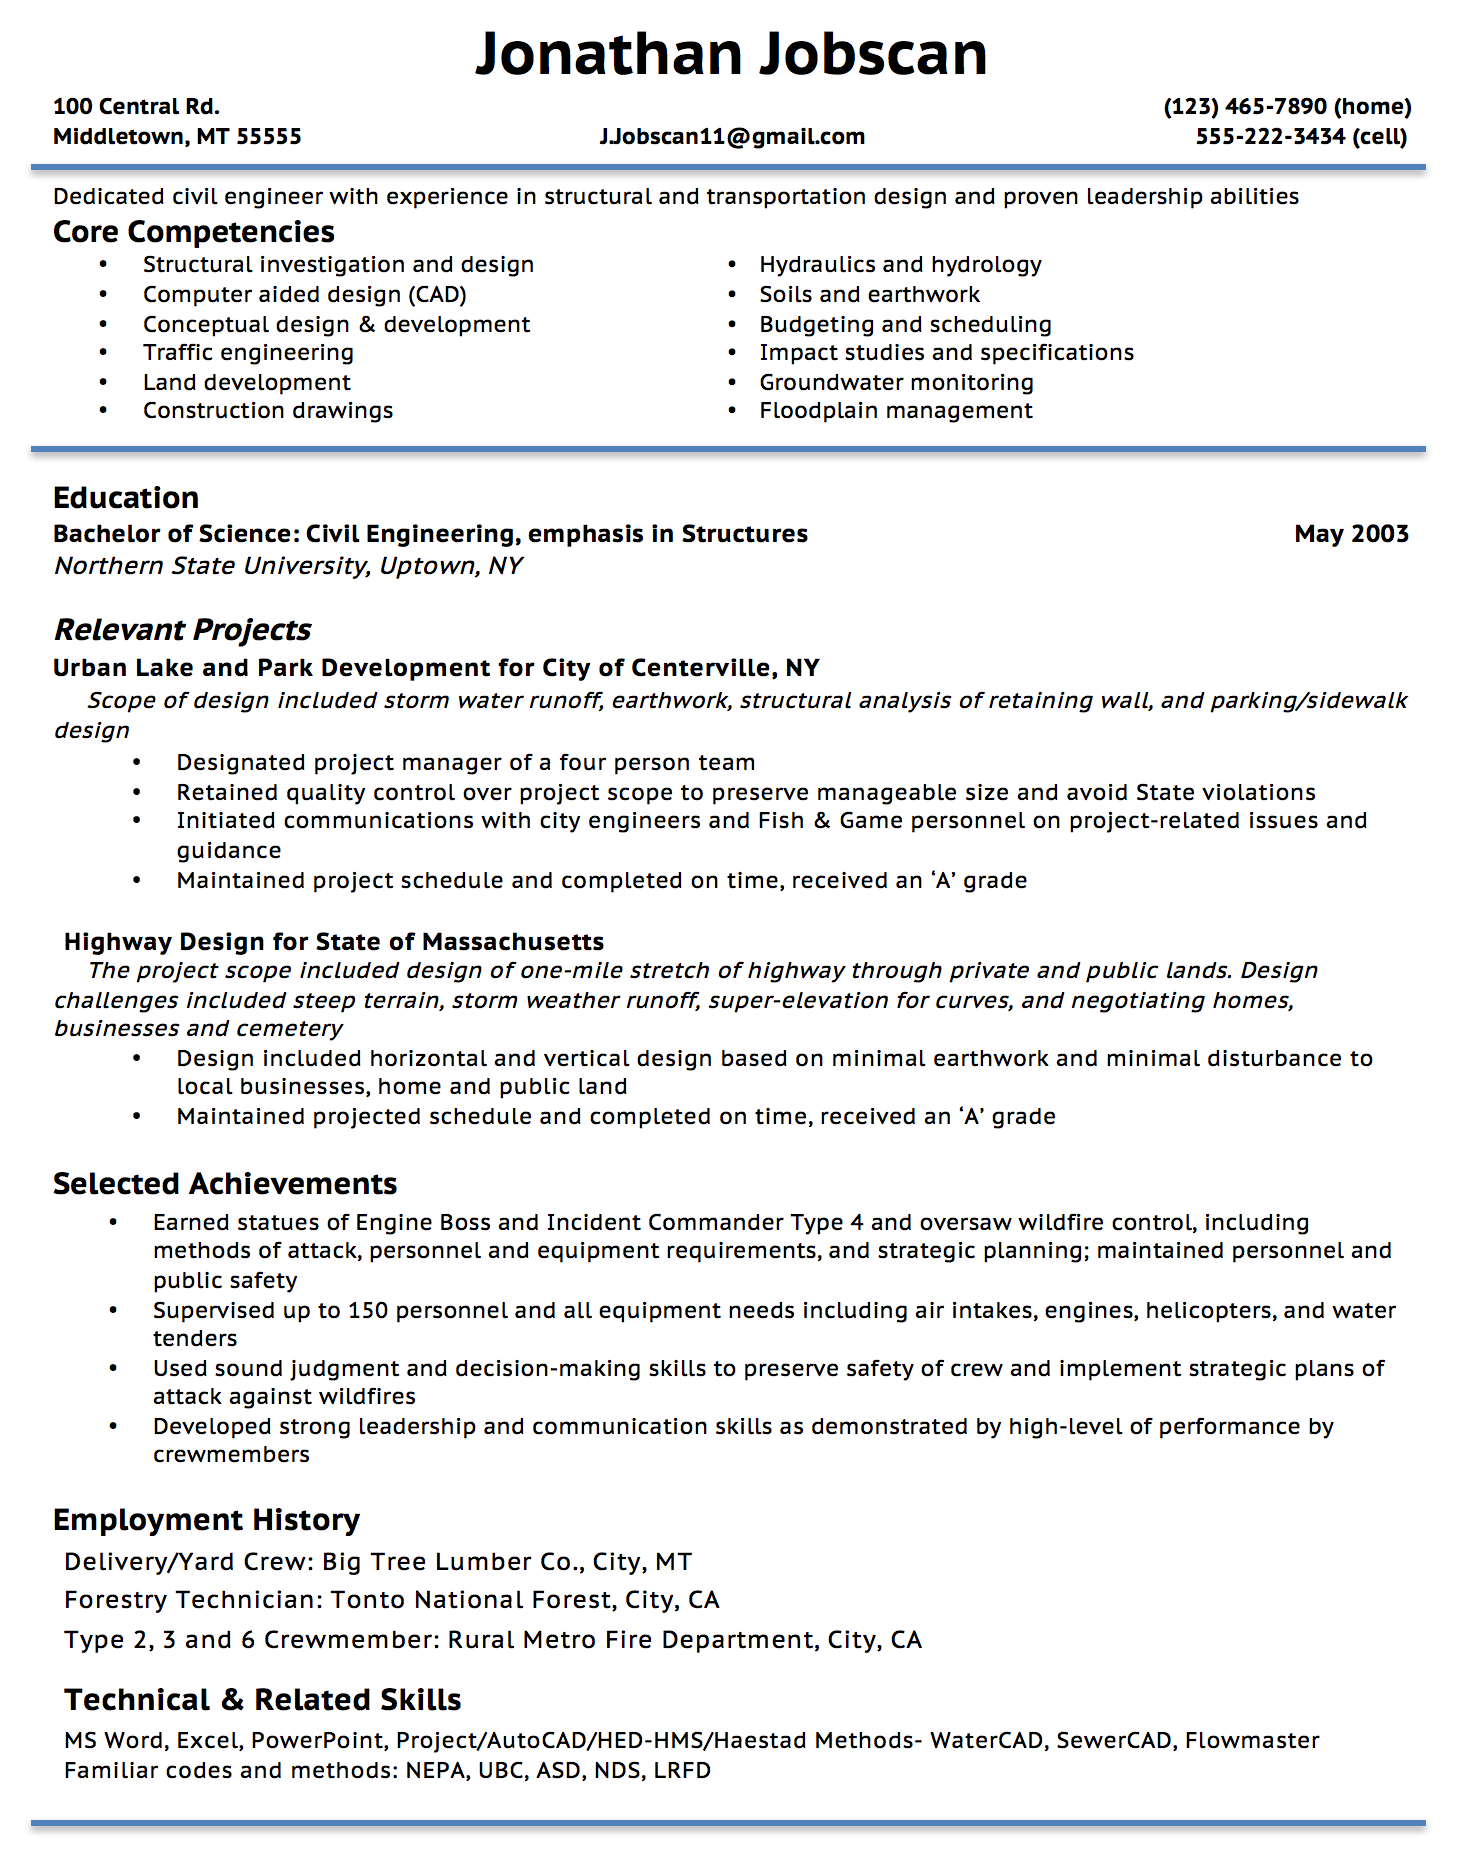 Opposenewapstandardsus  Personable Resume Writing Guide  Jobscan With Exciting Example Of A Functional Resume Format With Delightful It Resume Tips Also Show Me A Resume In Addition Pharmacy Technician Resume Sample And Infographic Resumes As Well As How Many Pages Should Your Resume Be Additionally What Does Designation Mean On A Resume From Jobscanco With Opposenewapstandardsus  Exciting Resume Writing Guide  Jobscan With Delightful Example Of A Functional Resume Format And Personable It Resume Tips Also Show Me A Resume In Addition Pharmacy Technician Resume Sample From Jobscanco